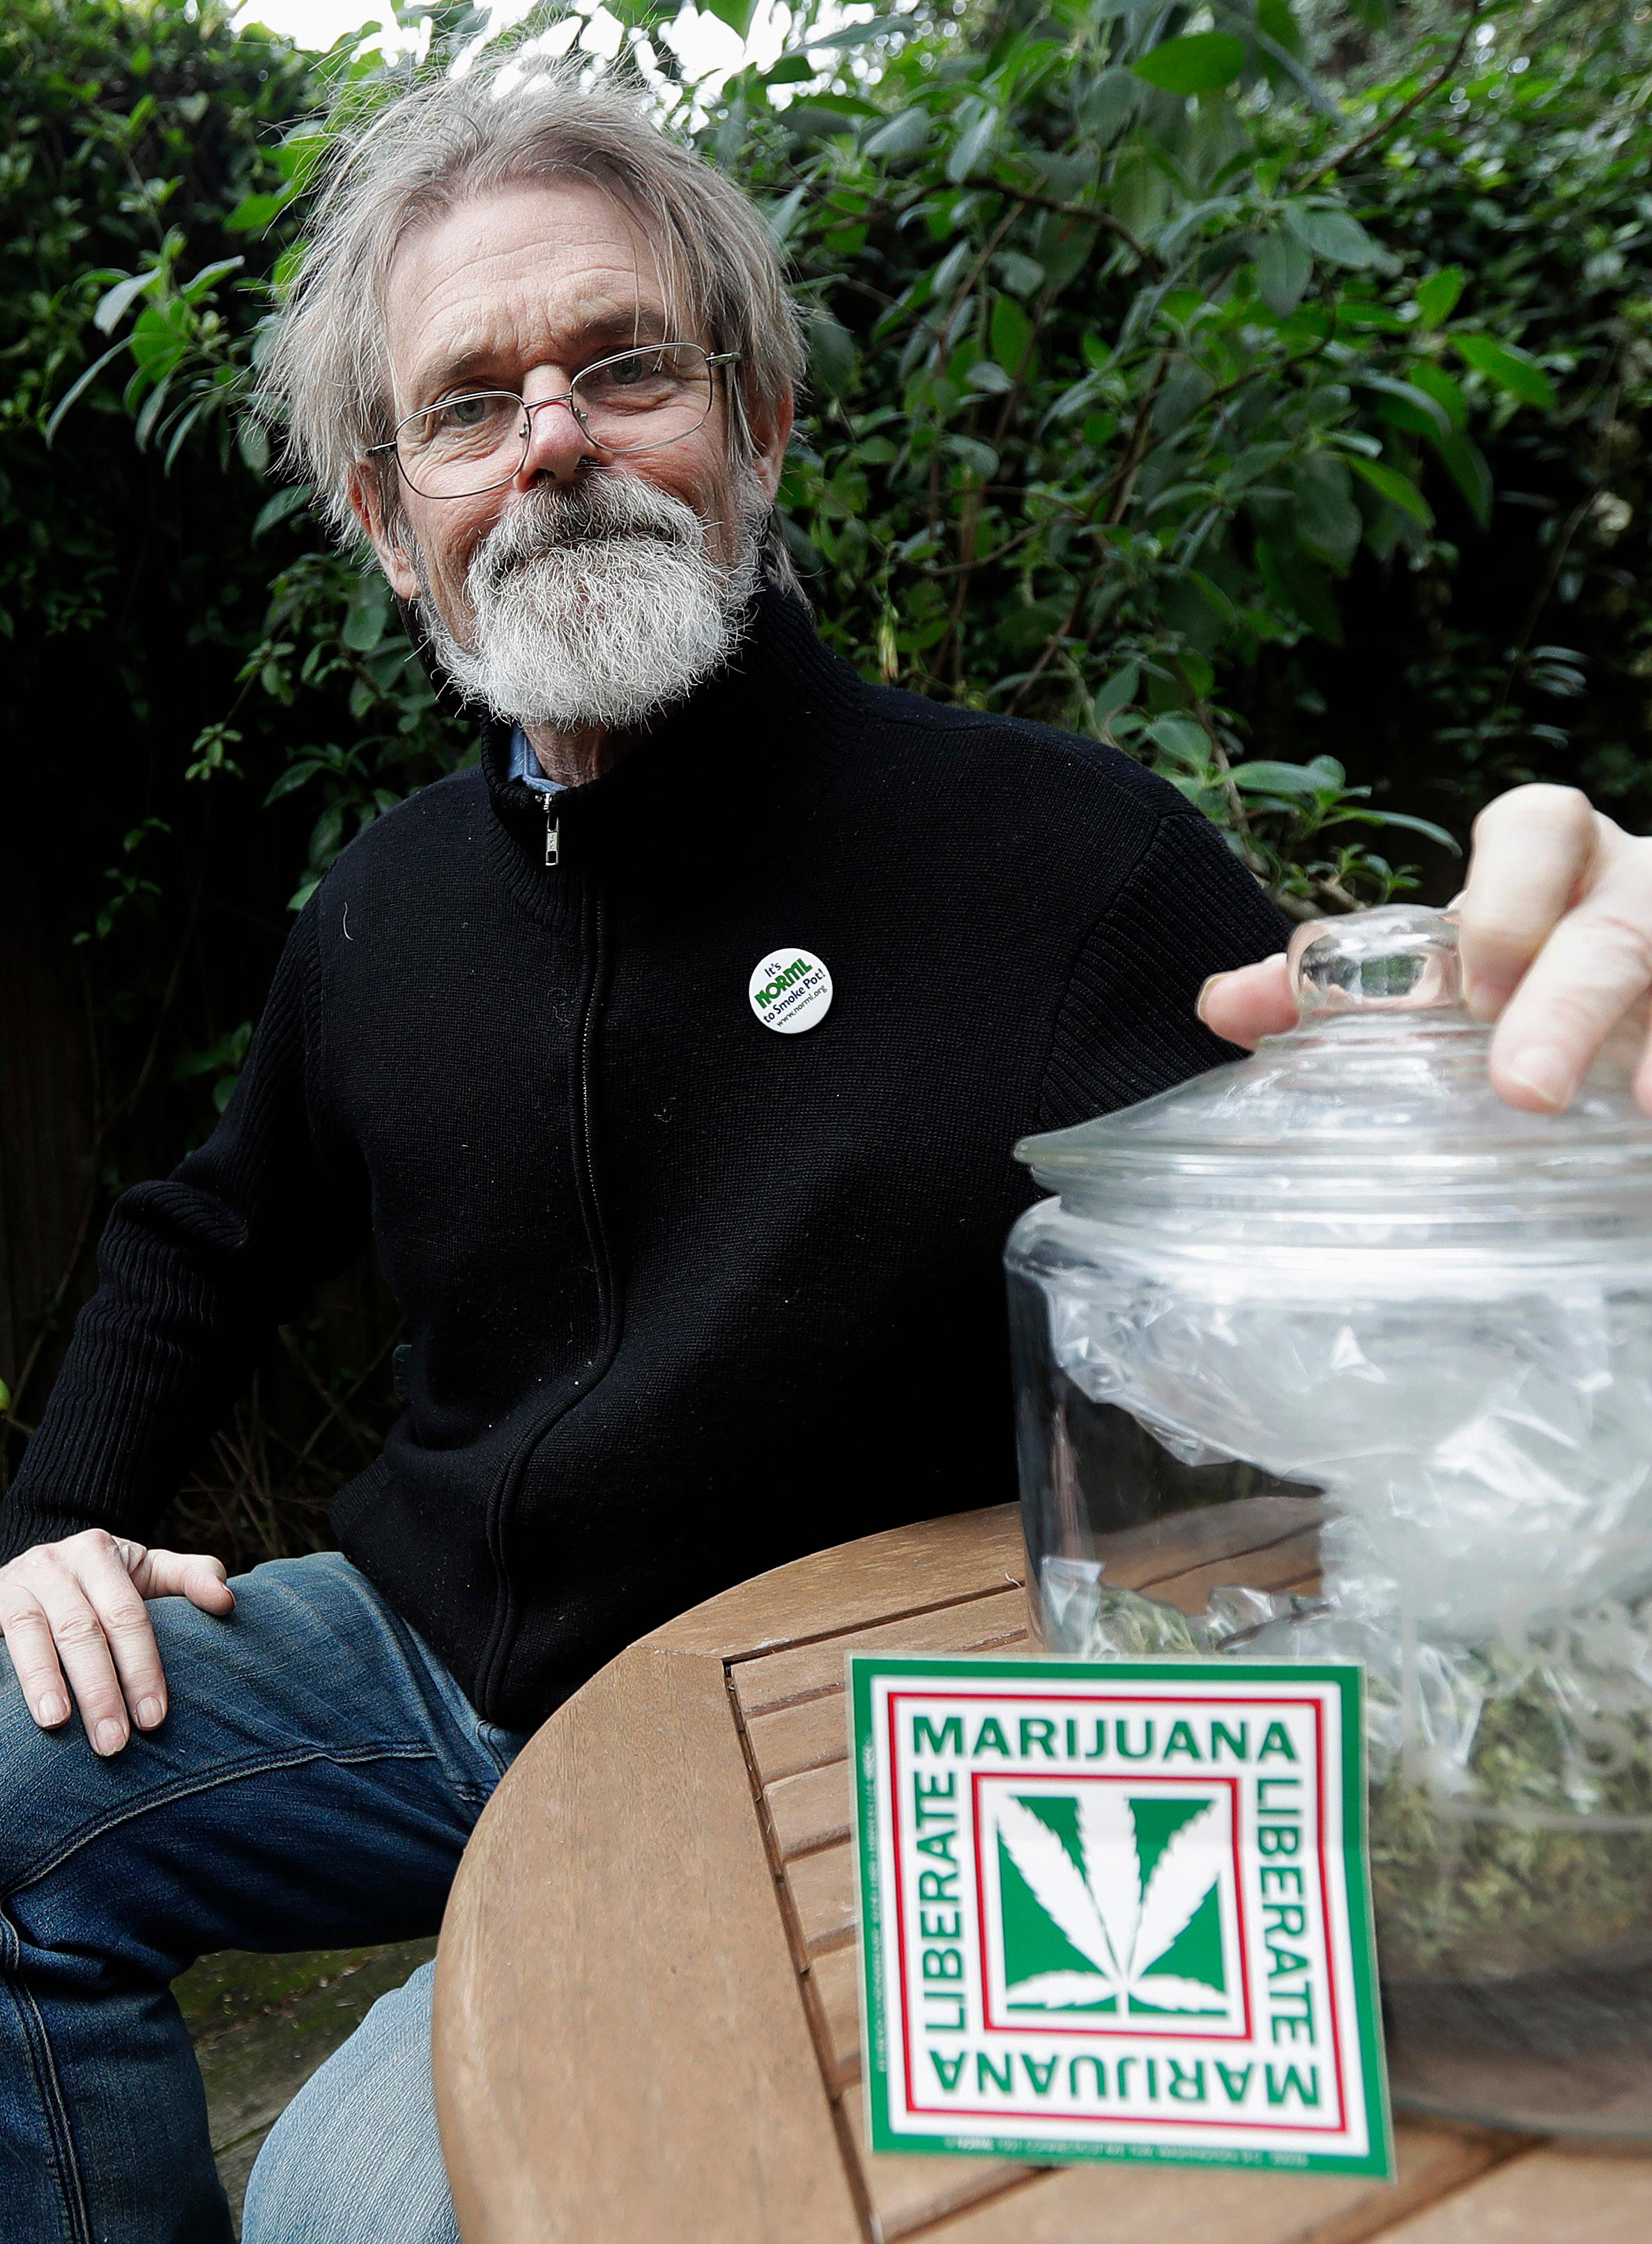 In this Dec. 22, 2017 photo, Dale Gieringer of NORML (National Organization for the Reform of Marijuana Laws) poses for photos at his house in Berkeley, Calif. Californians may awake on New Year's Day to a familiar scent in greater-than-normal concentrations. A whiff of marijuana will likely be in the air as the nation's cannabis king lights up to celebrate the first legal retail sales of pot in the state. (AP Photo/Jeff Chiu)